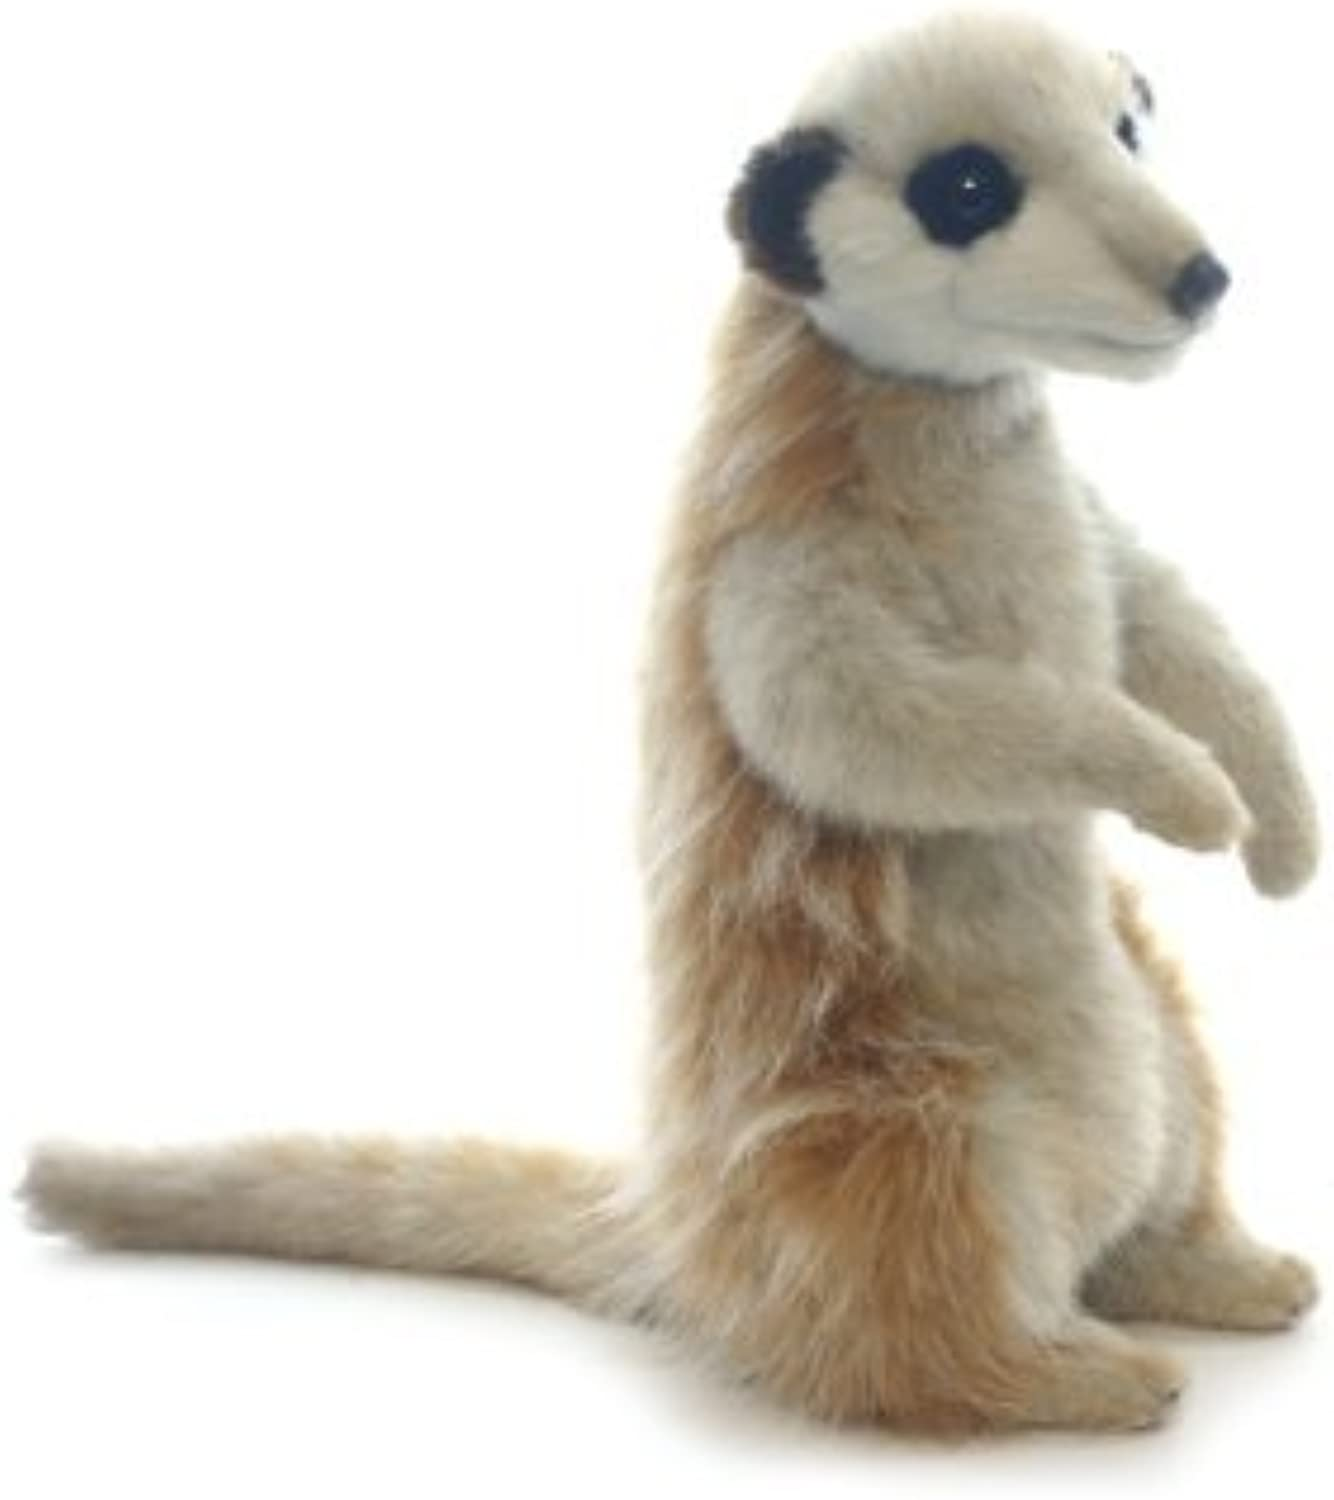 caliente Hansa Youth Youth Youth Meerkat Plush by Hansa  40% de descuento